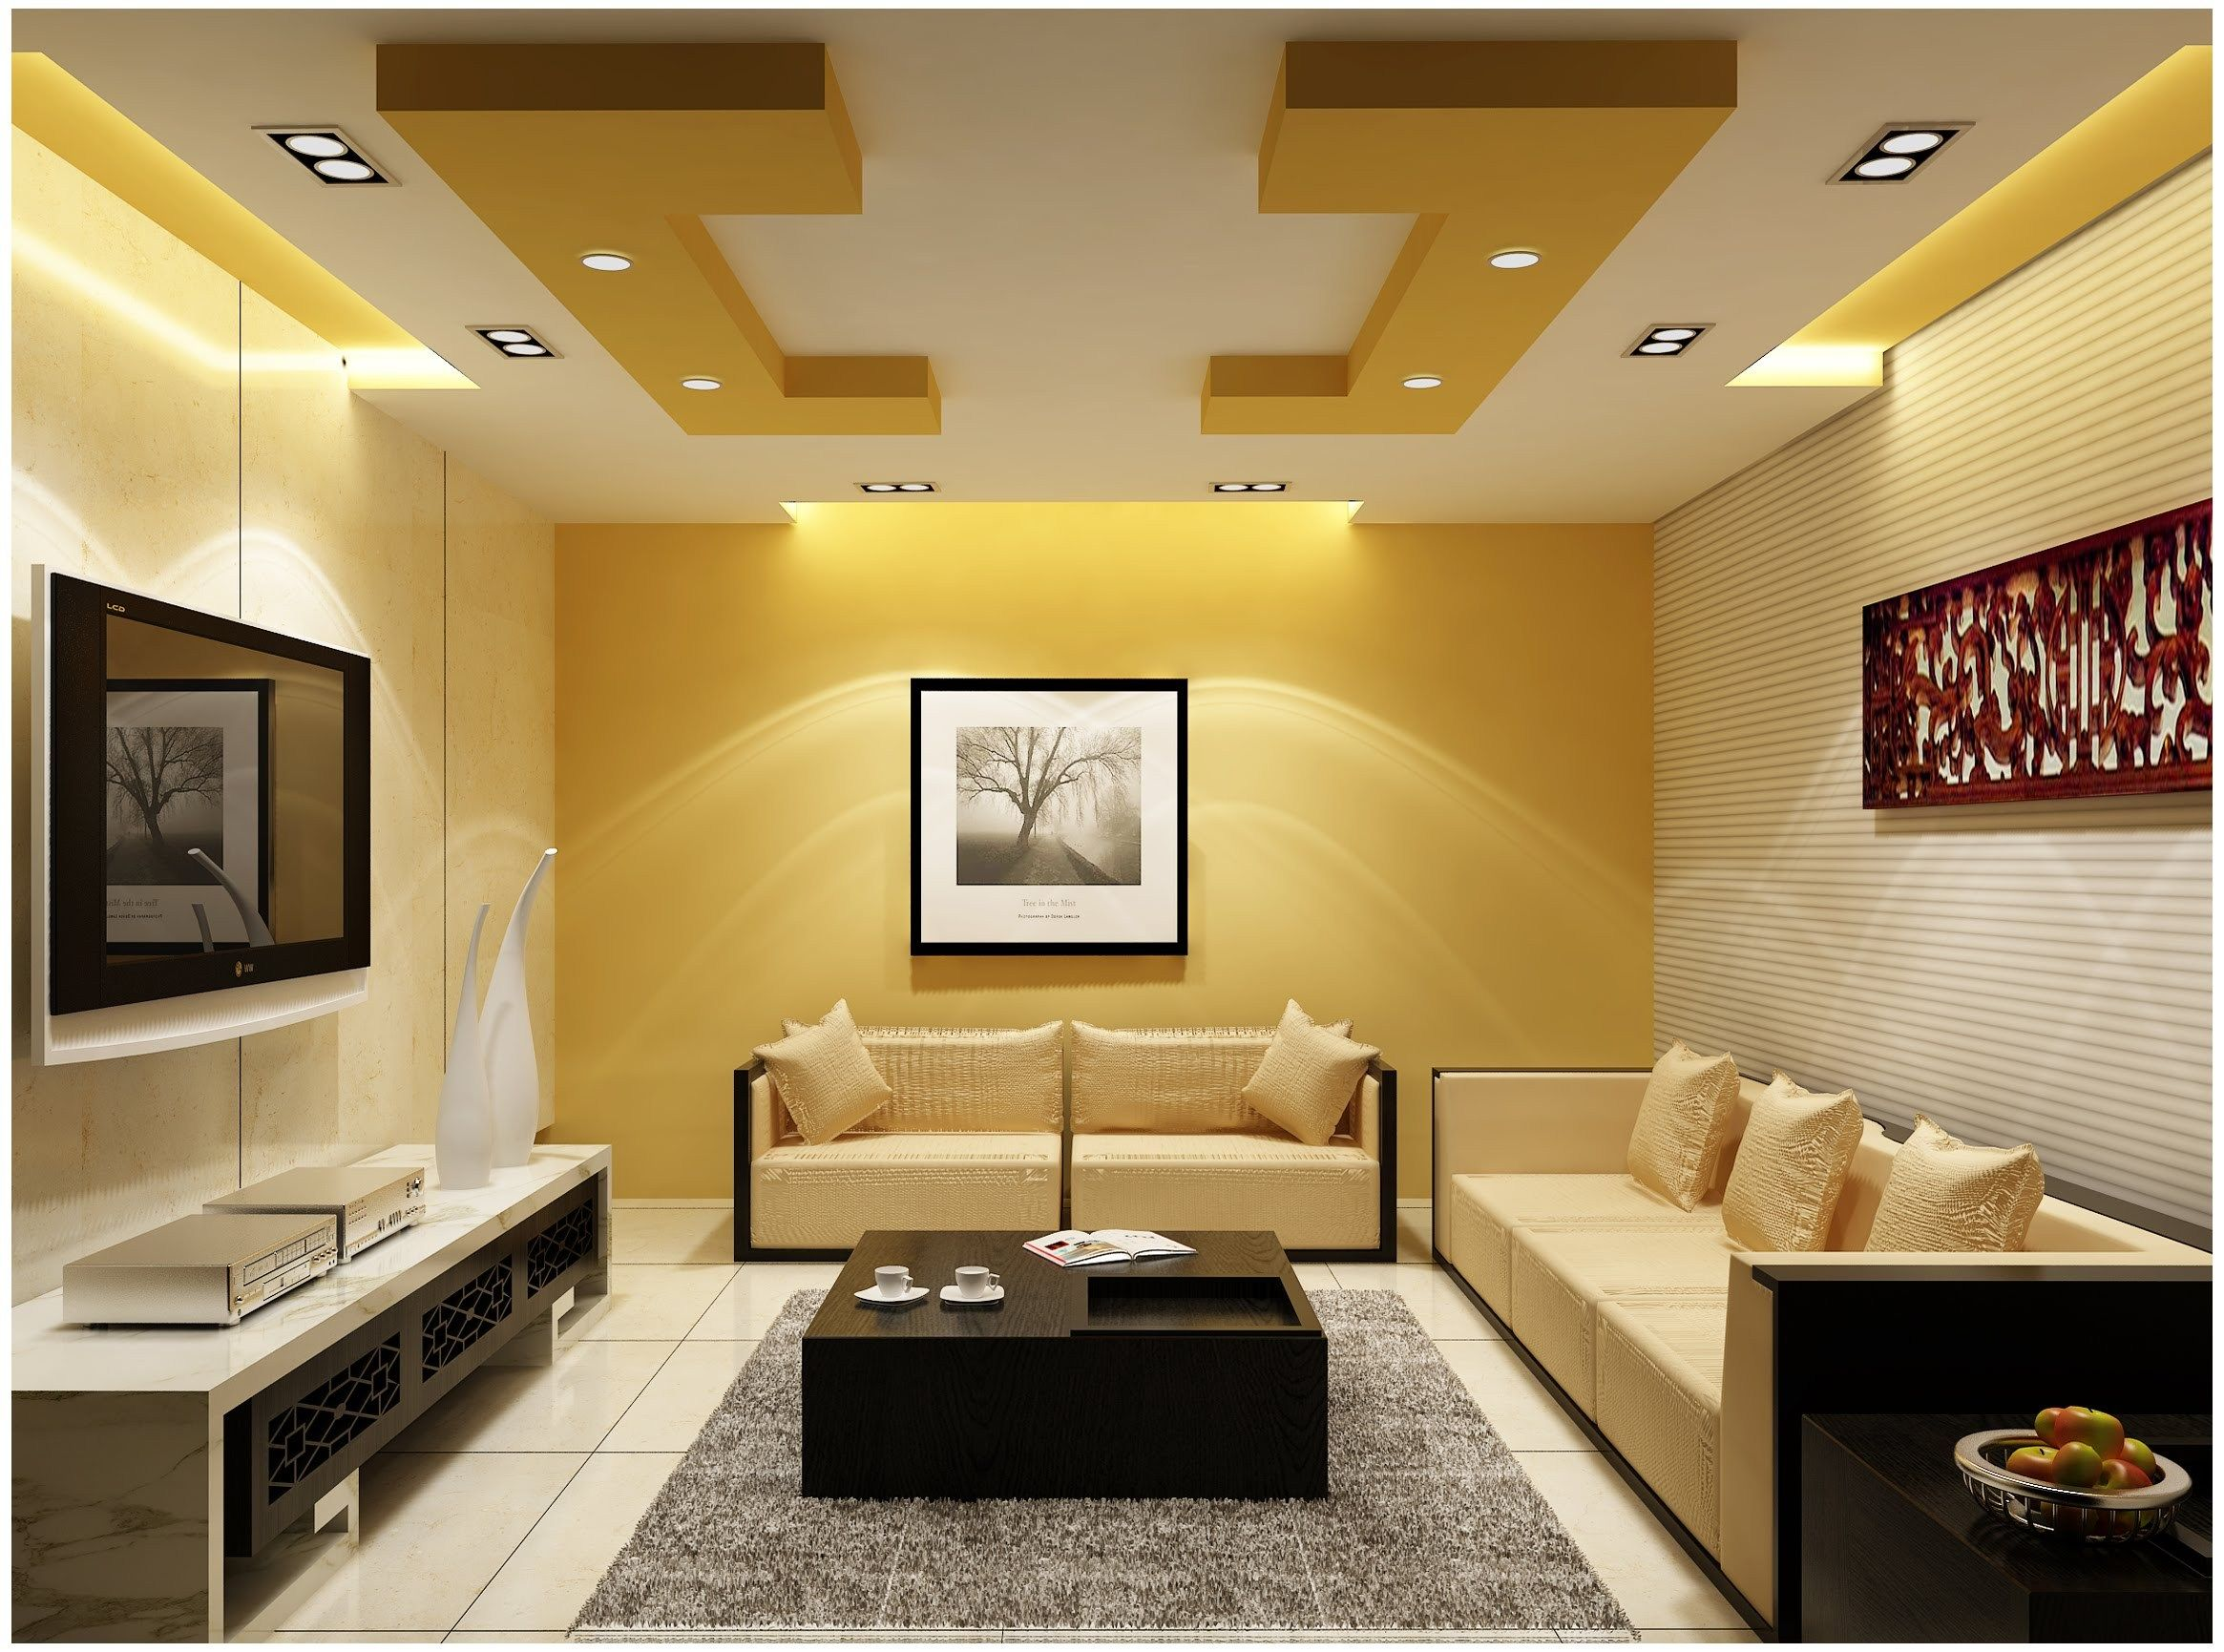 Great ... To The General Outlook Of The Ceiling, So You Need To Choose A Ceiling  Carefully. Here Are Some Creative Ceiling Designs Perfect For The Living  Room; ...